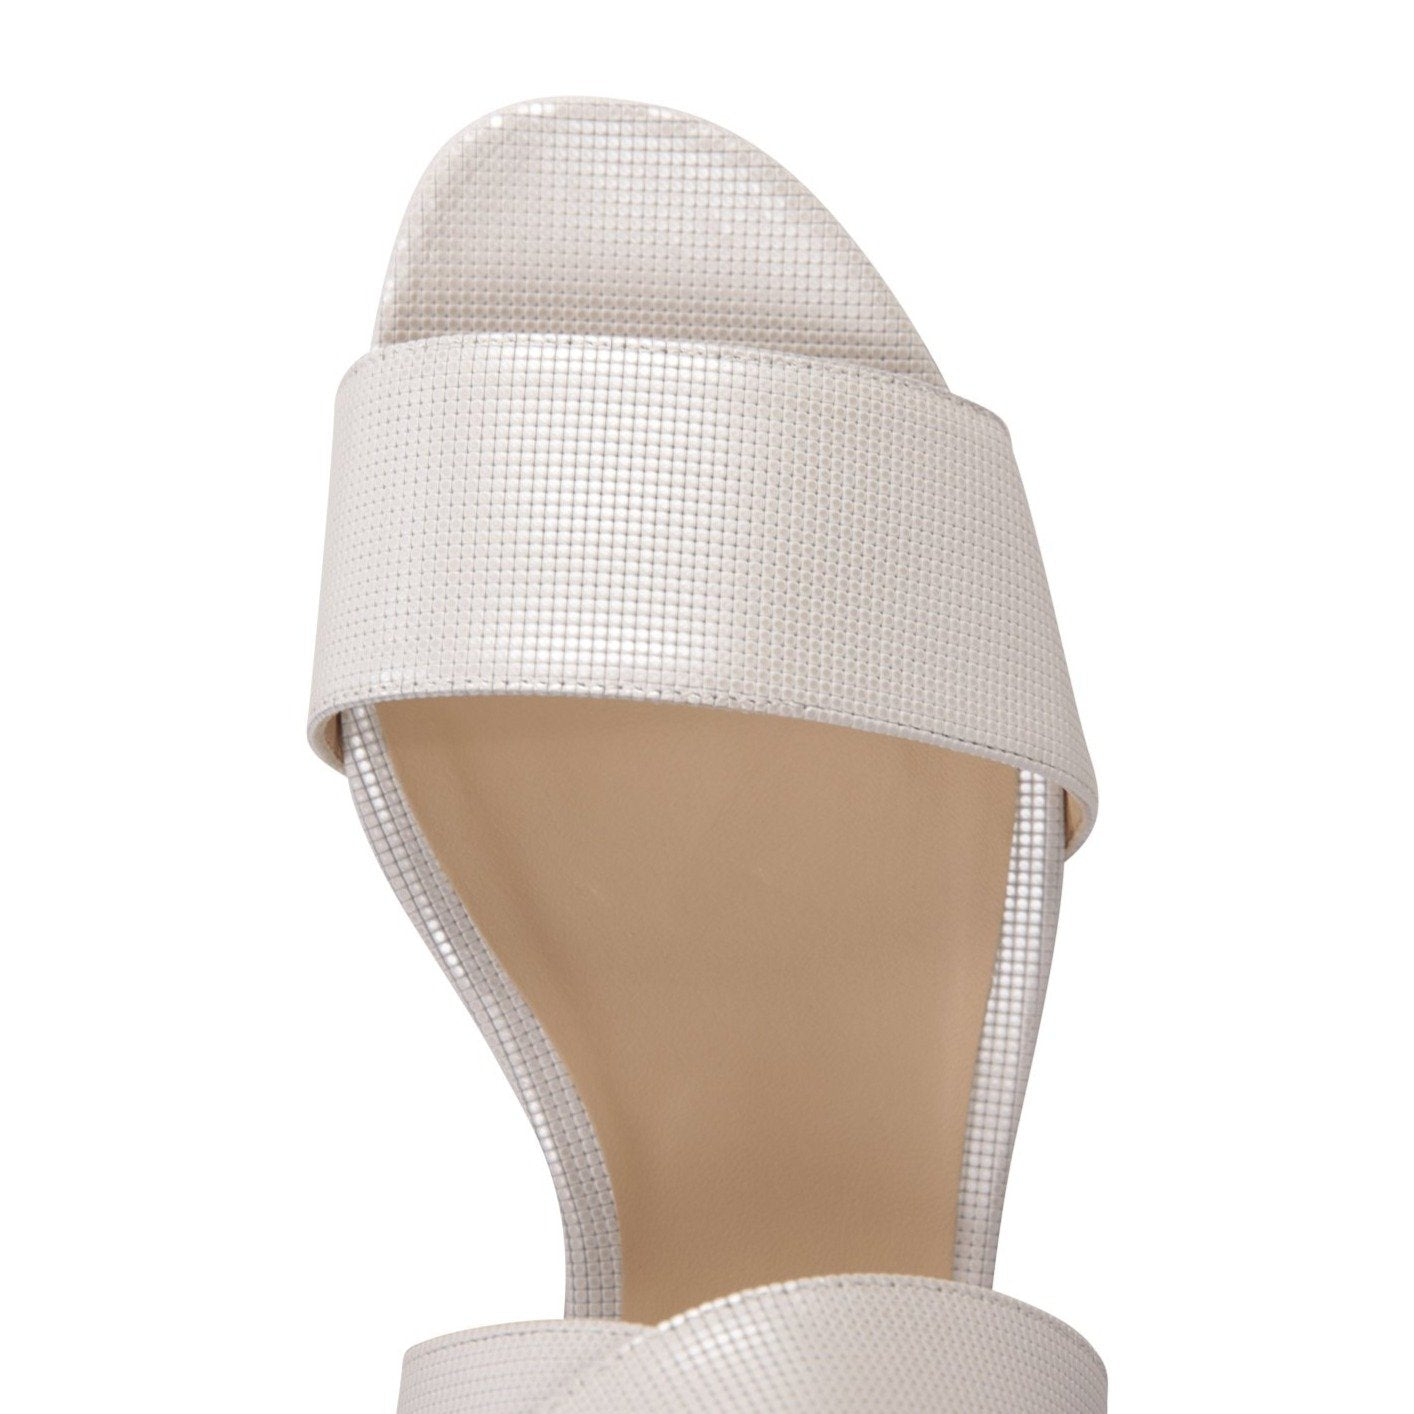 LUCCA - Pixel Bianco, VIAJIYU - Women's Hand Made Sustainable Luxury Shoes. Made in Italy. Made to Order.